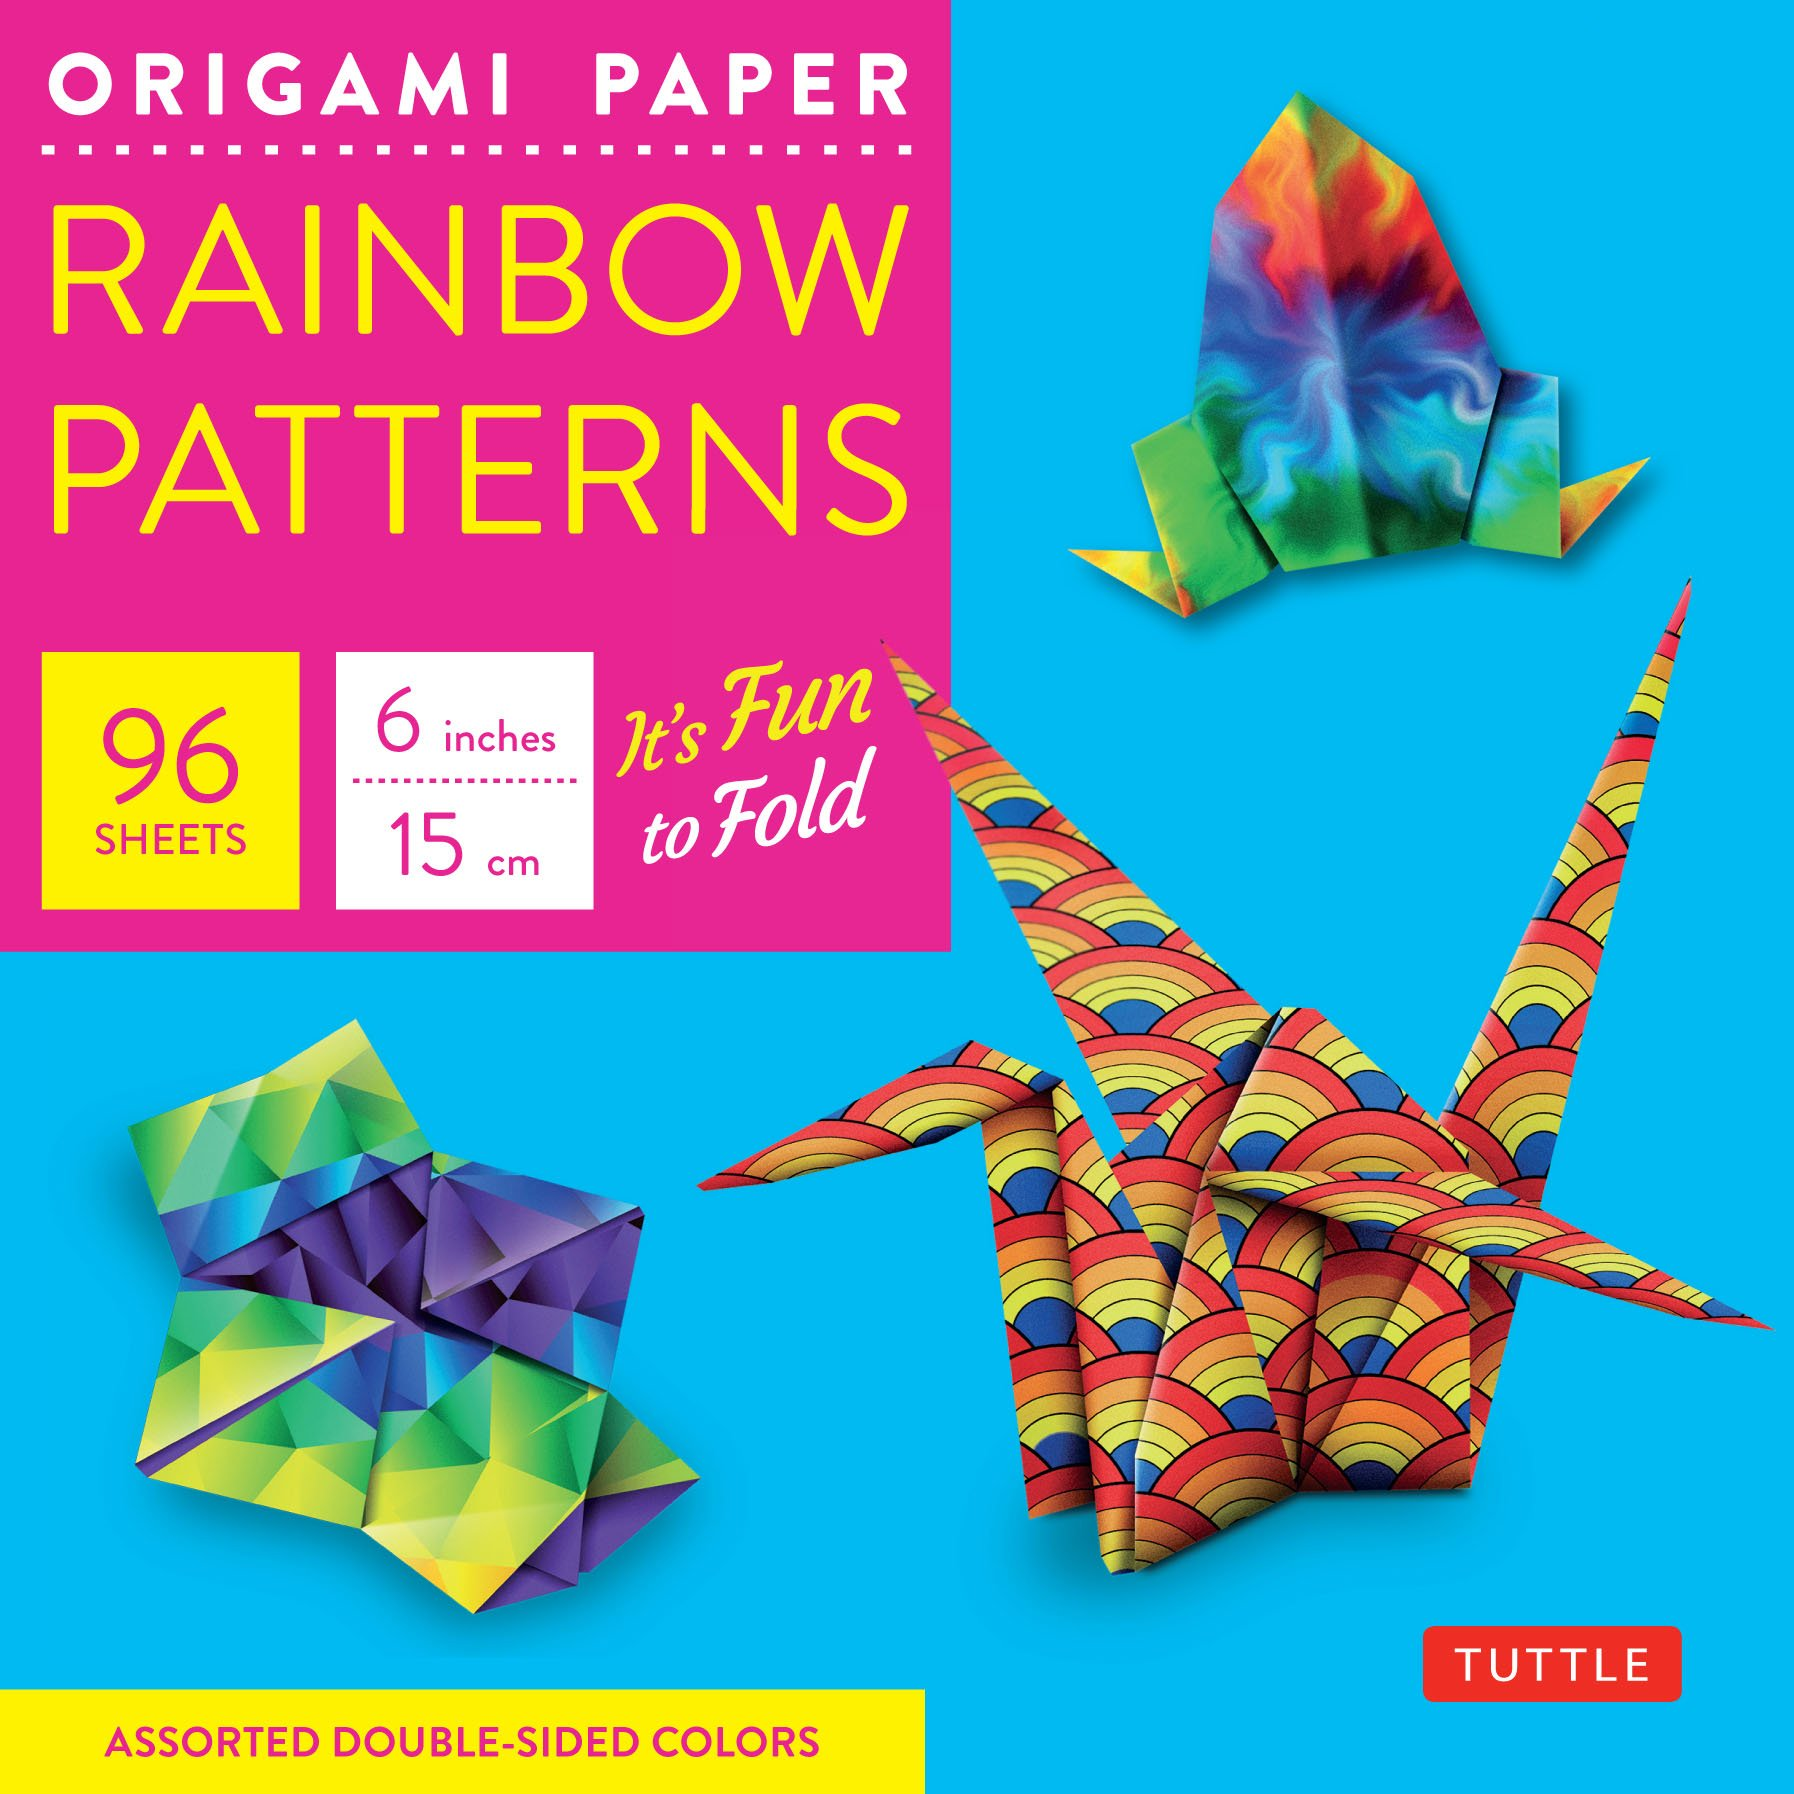 Amazon Com Origami Paper Rainbow Patterns 6 Size 96 Sheets